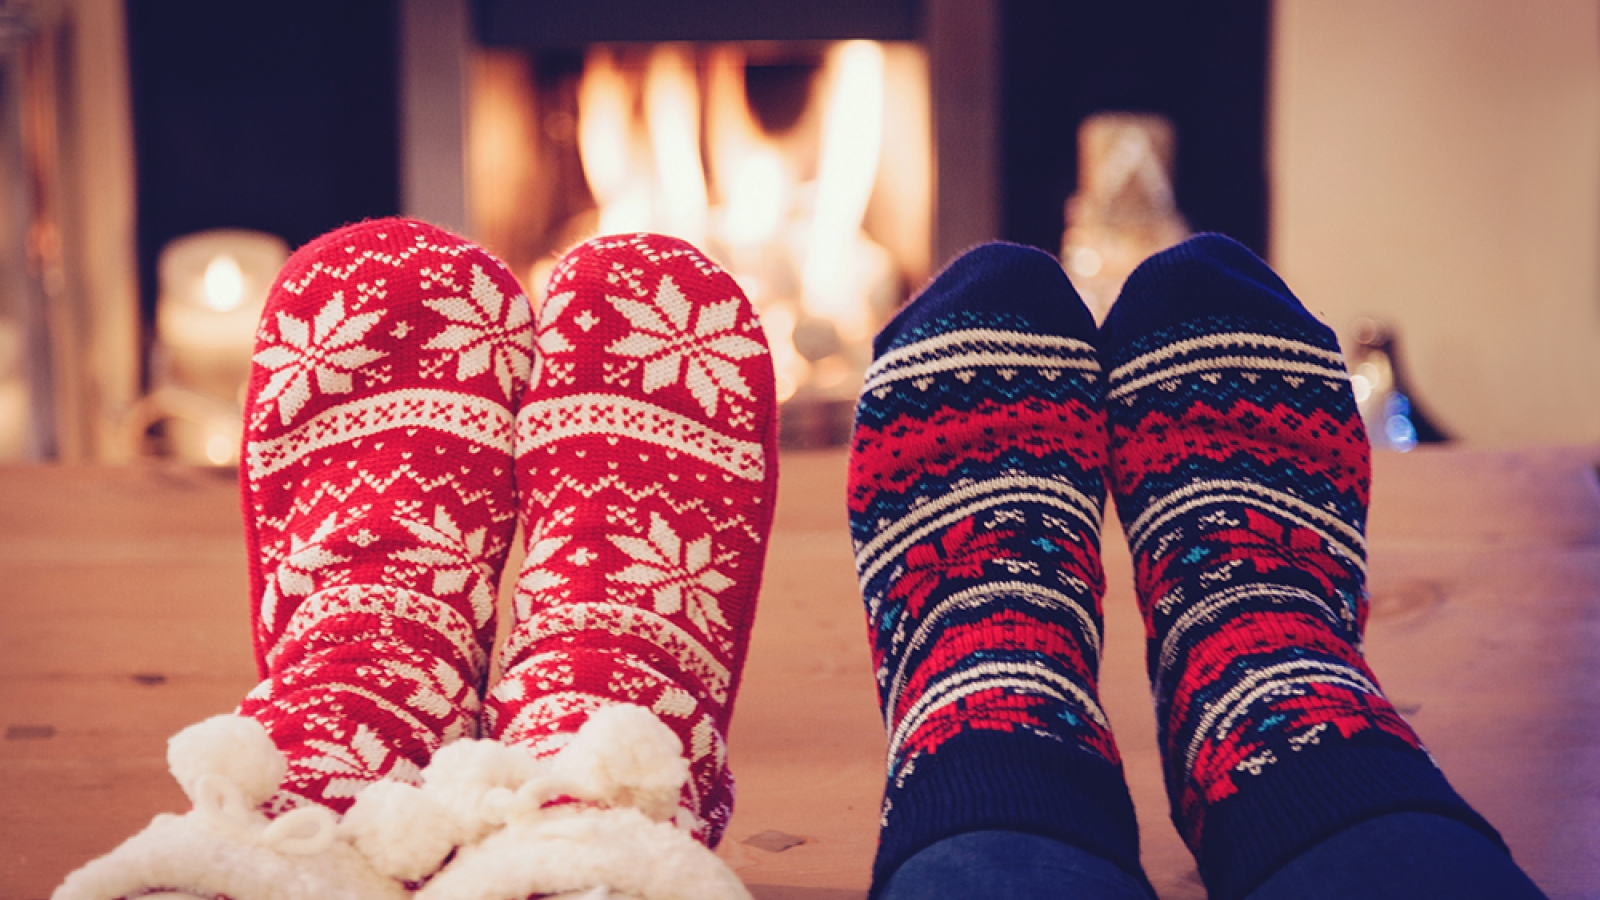 People wearing cozy socks in front of a fire